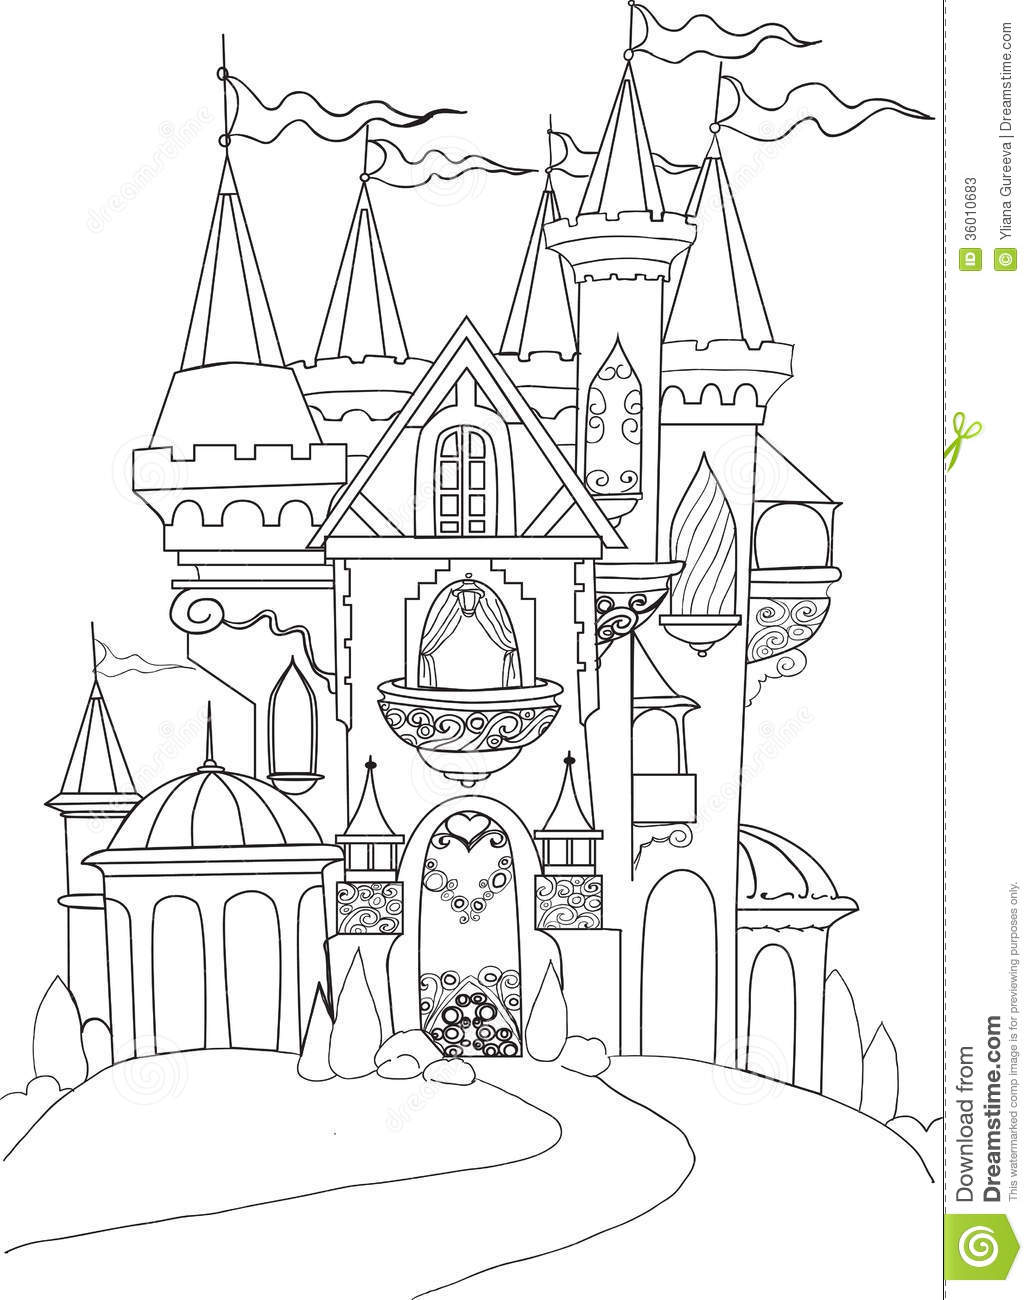 Disney World Castle Drawing at GetDrawings.com | Free for personal ...